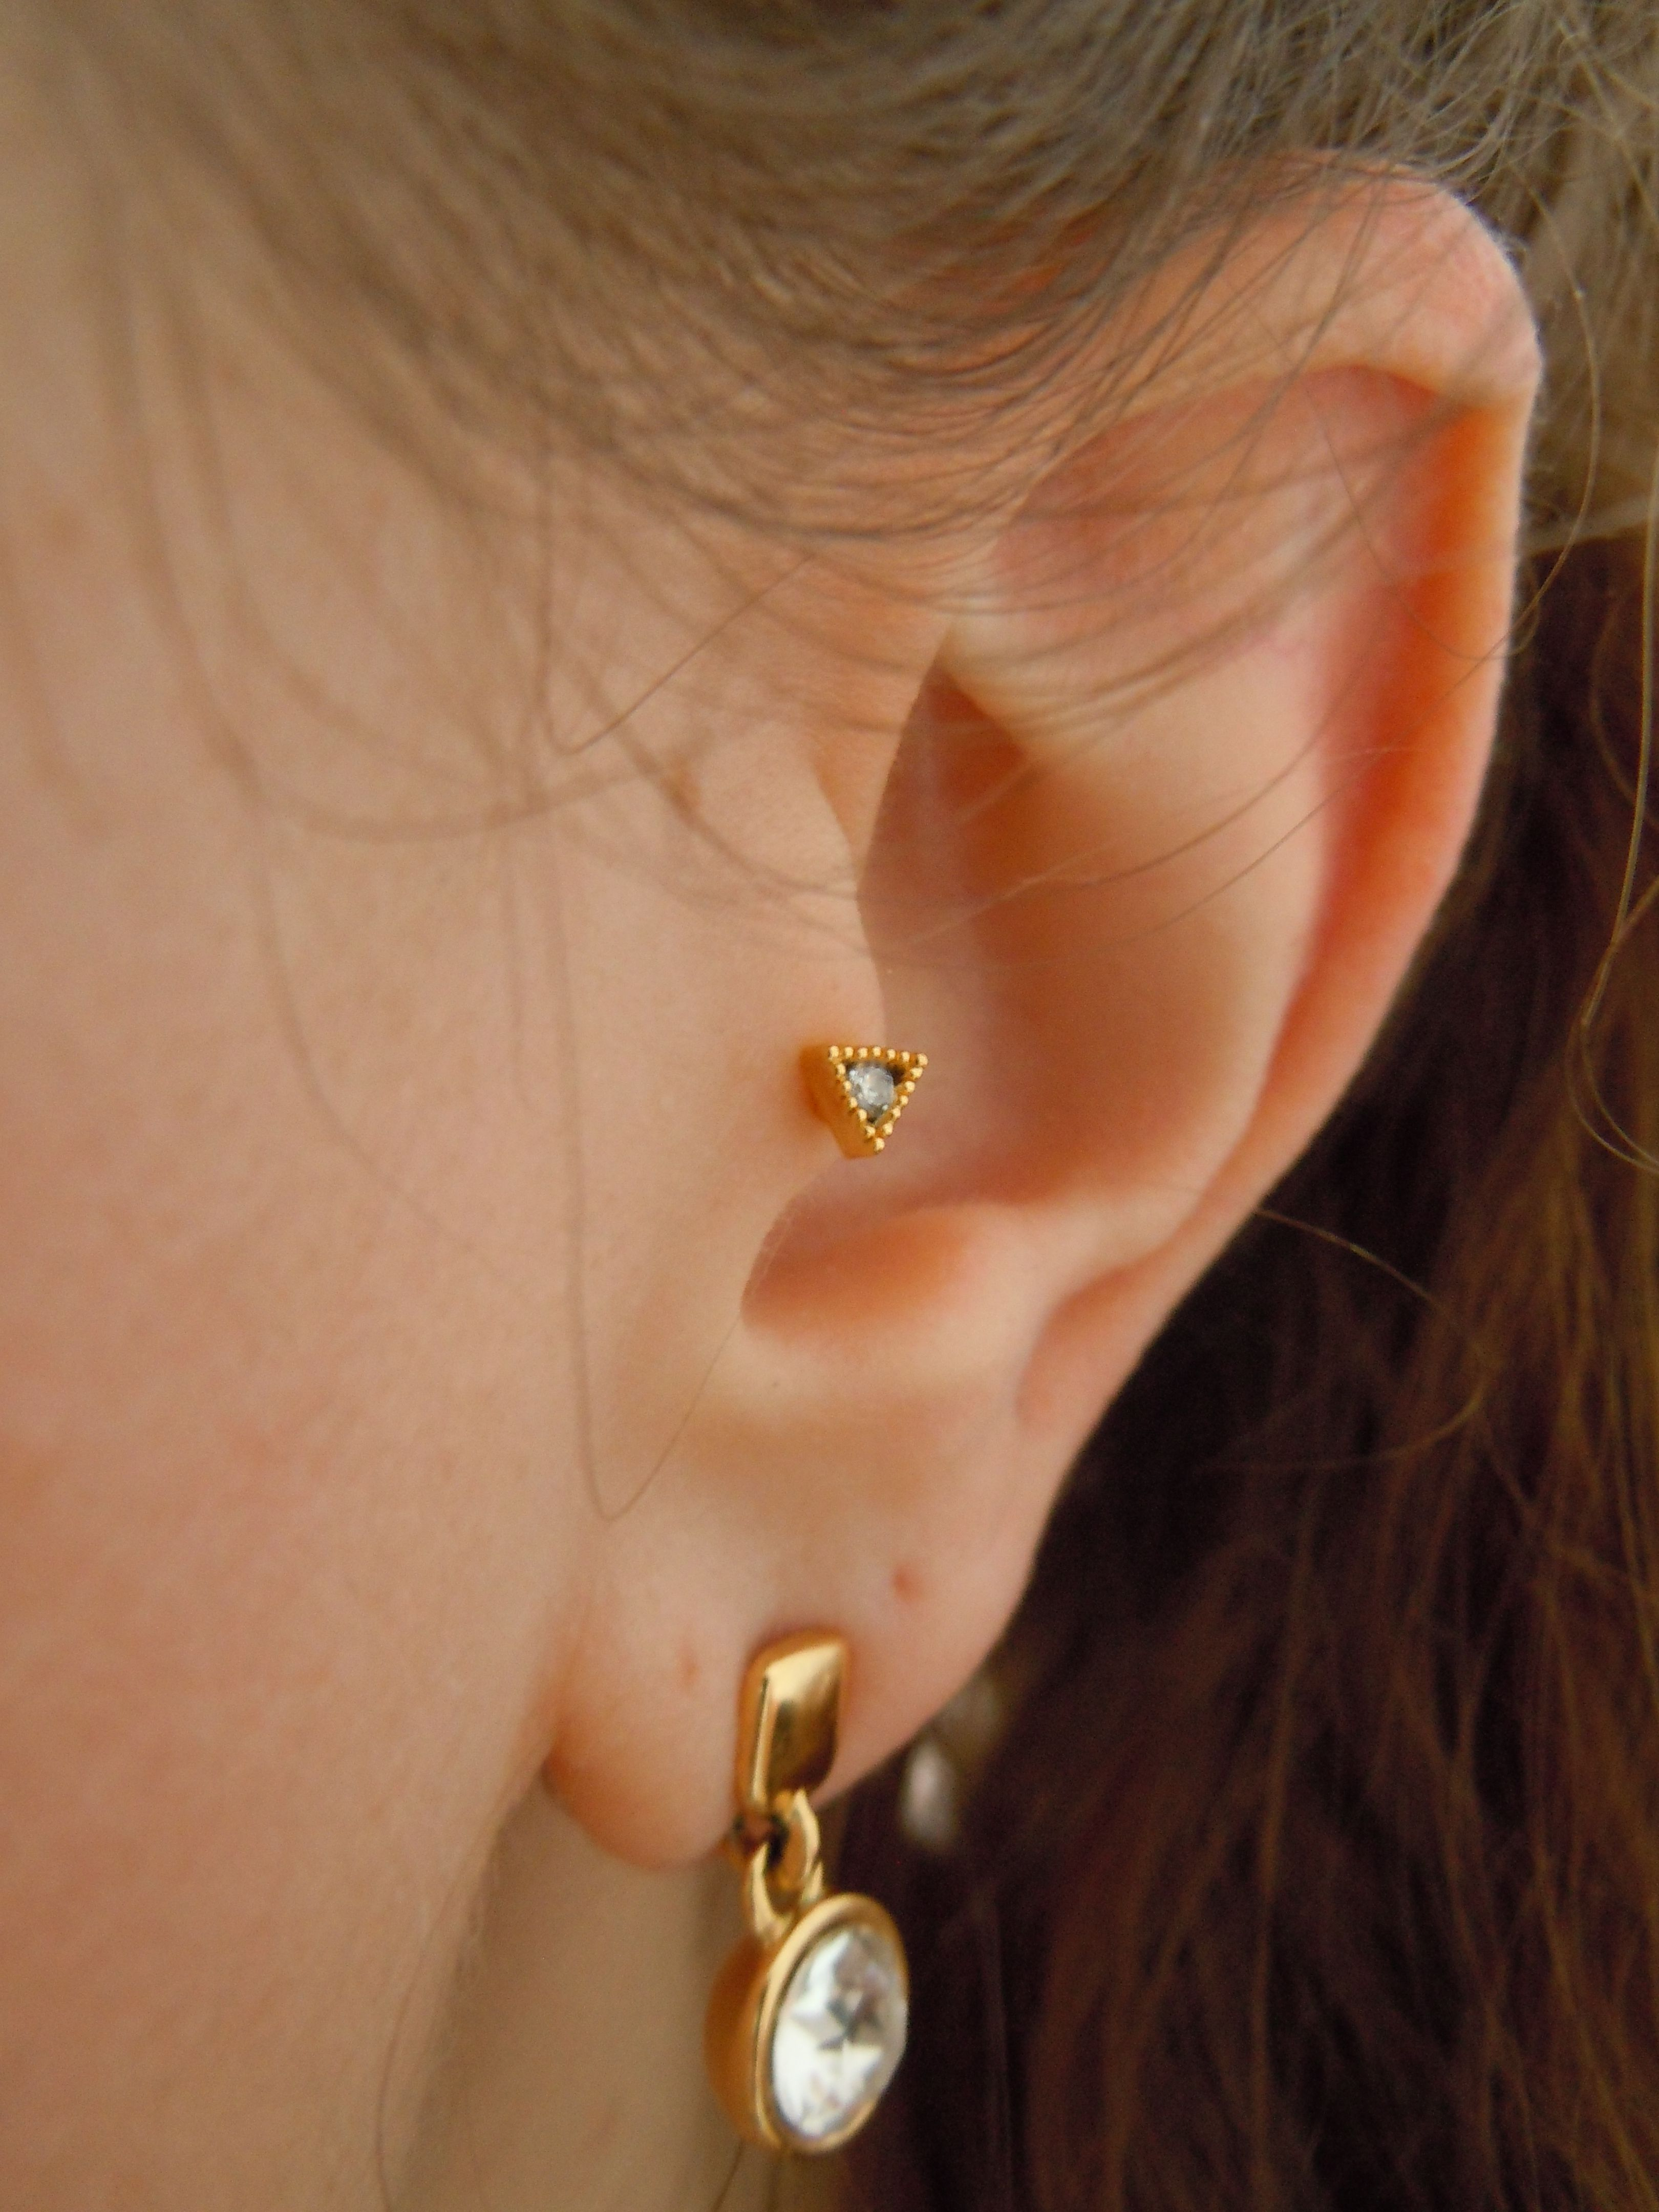 Nose piercing earrings  Tiny triangle tragus piercing found from Etsy store Small Talk